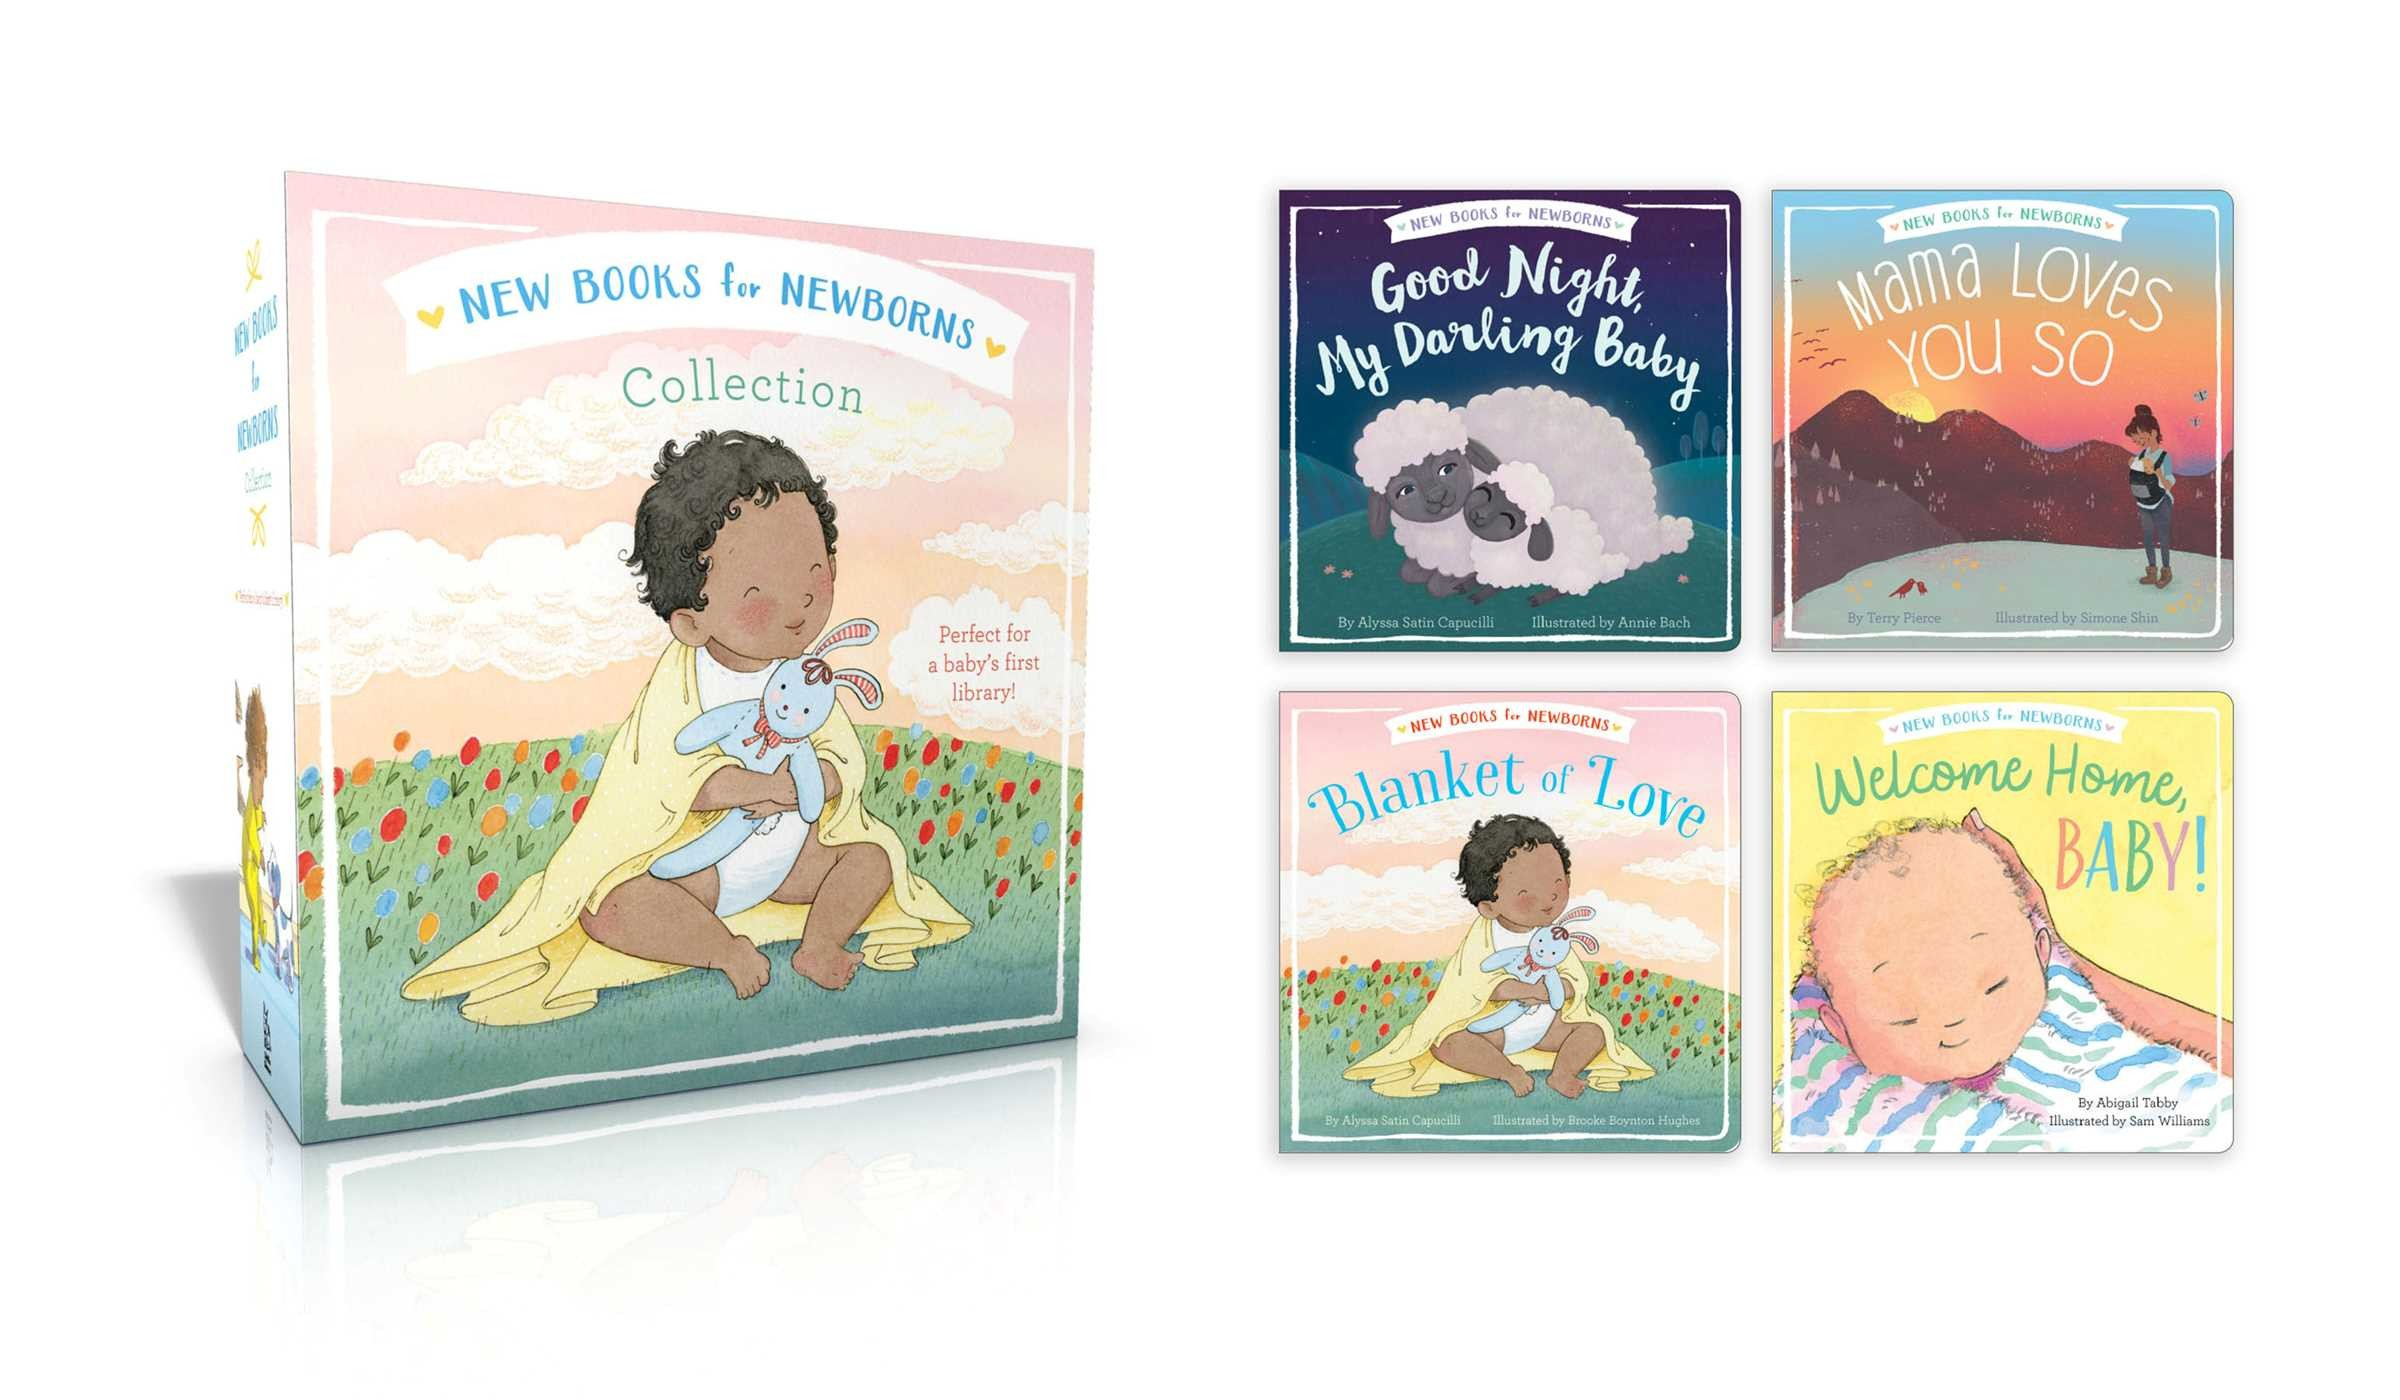 New books for newborns collection 9781534410152.in01